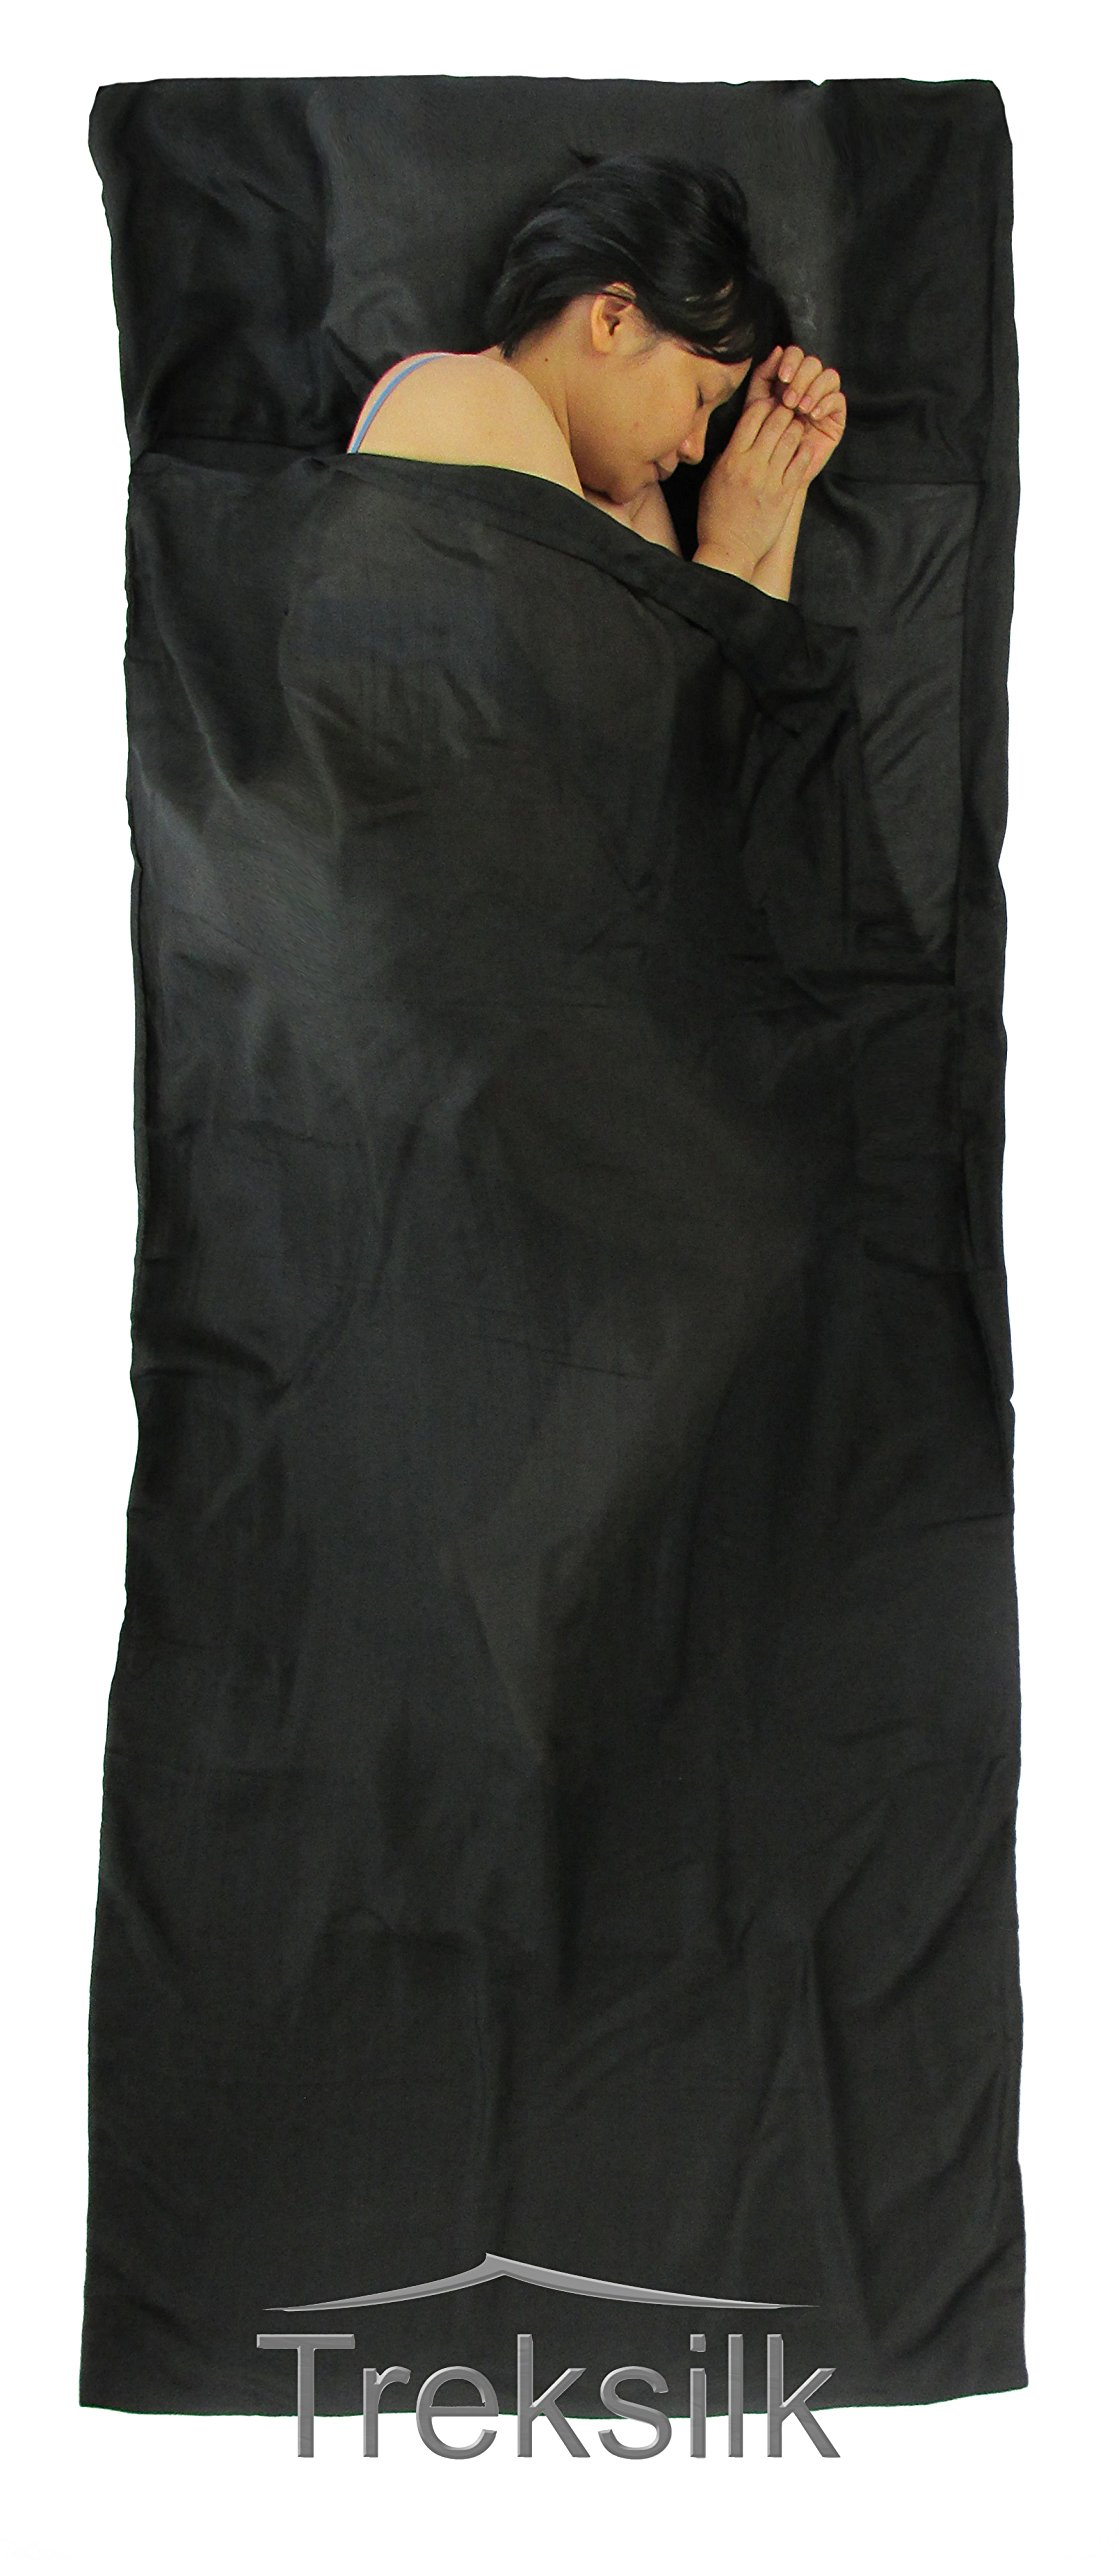 Treksilk: 240 cm! 100% Mulberry Silk Single Sleeping Bag Liner Travel Sheet Sack (Black) by Treksilk